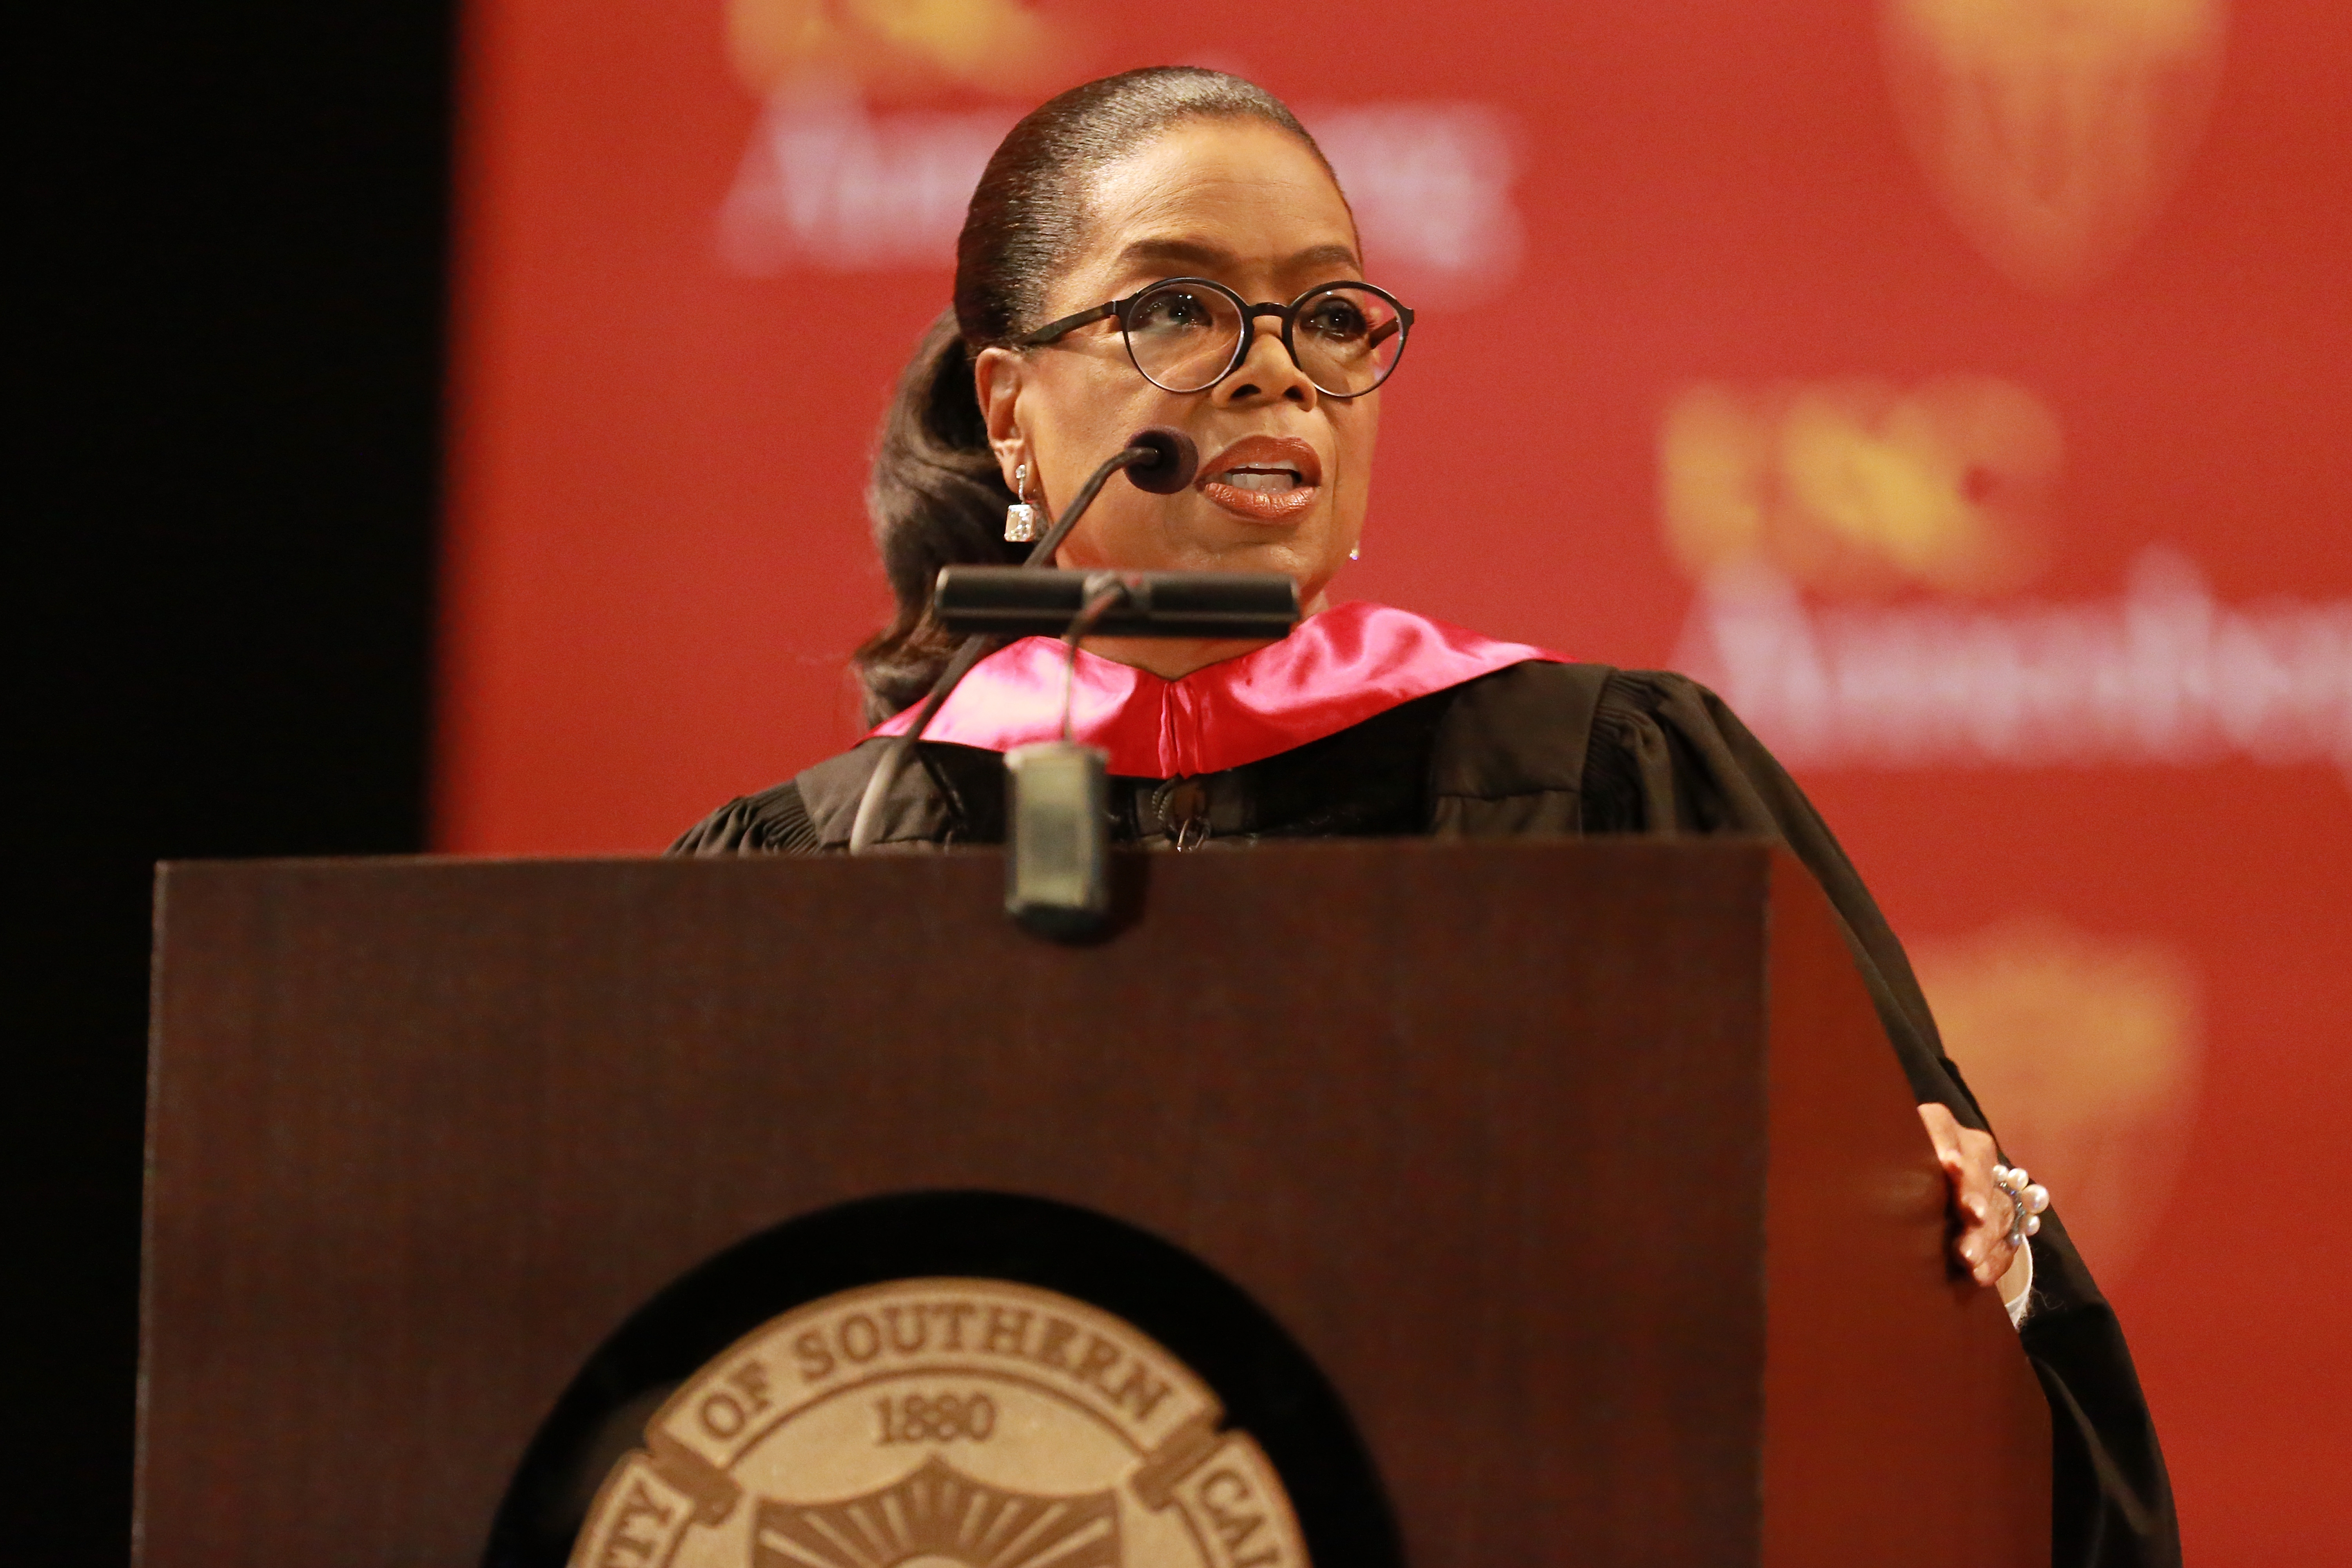 Oprah Winfrey at USC Annenberg School for Communications and Journalism